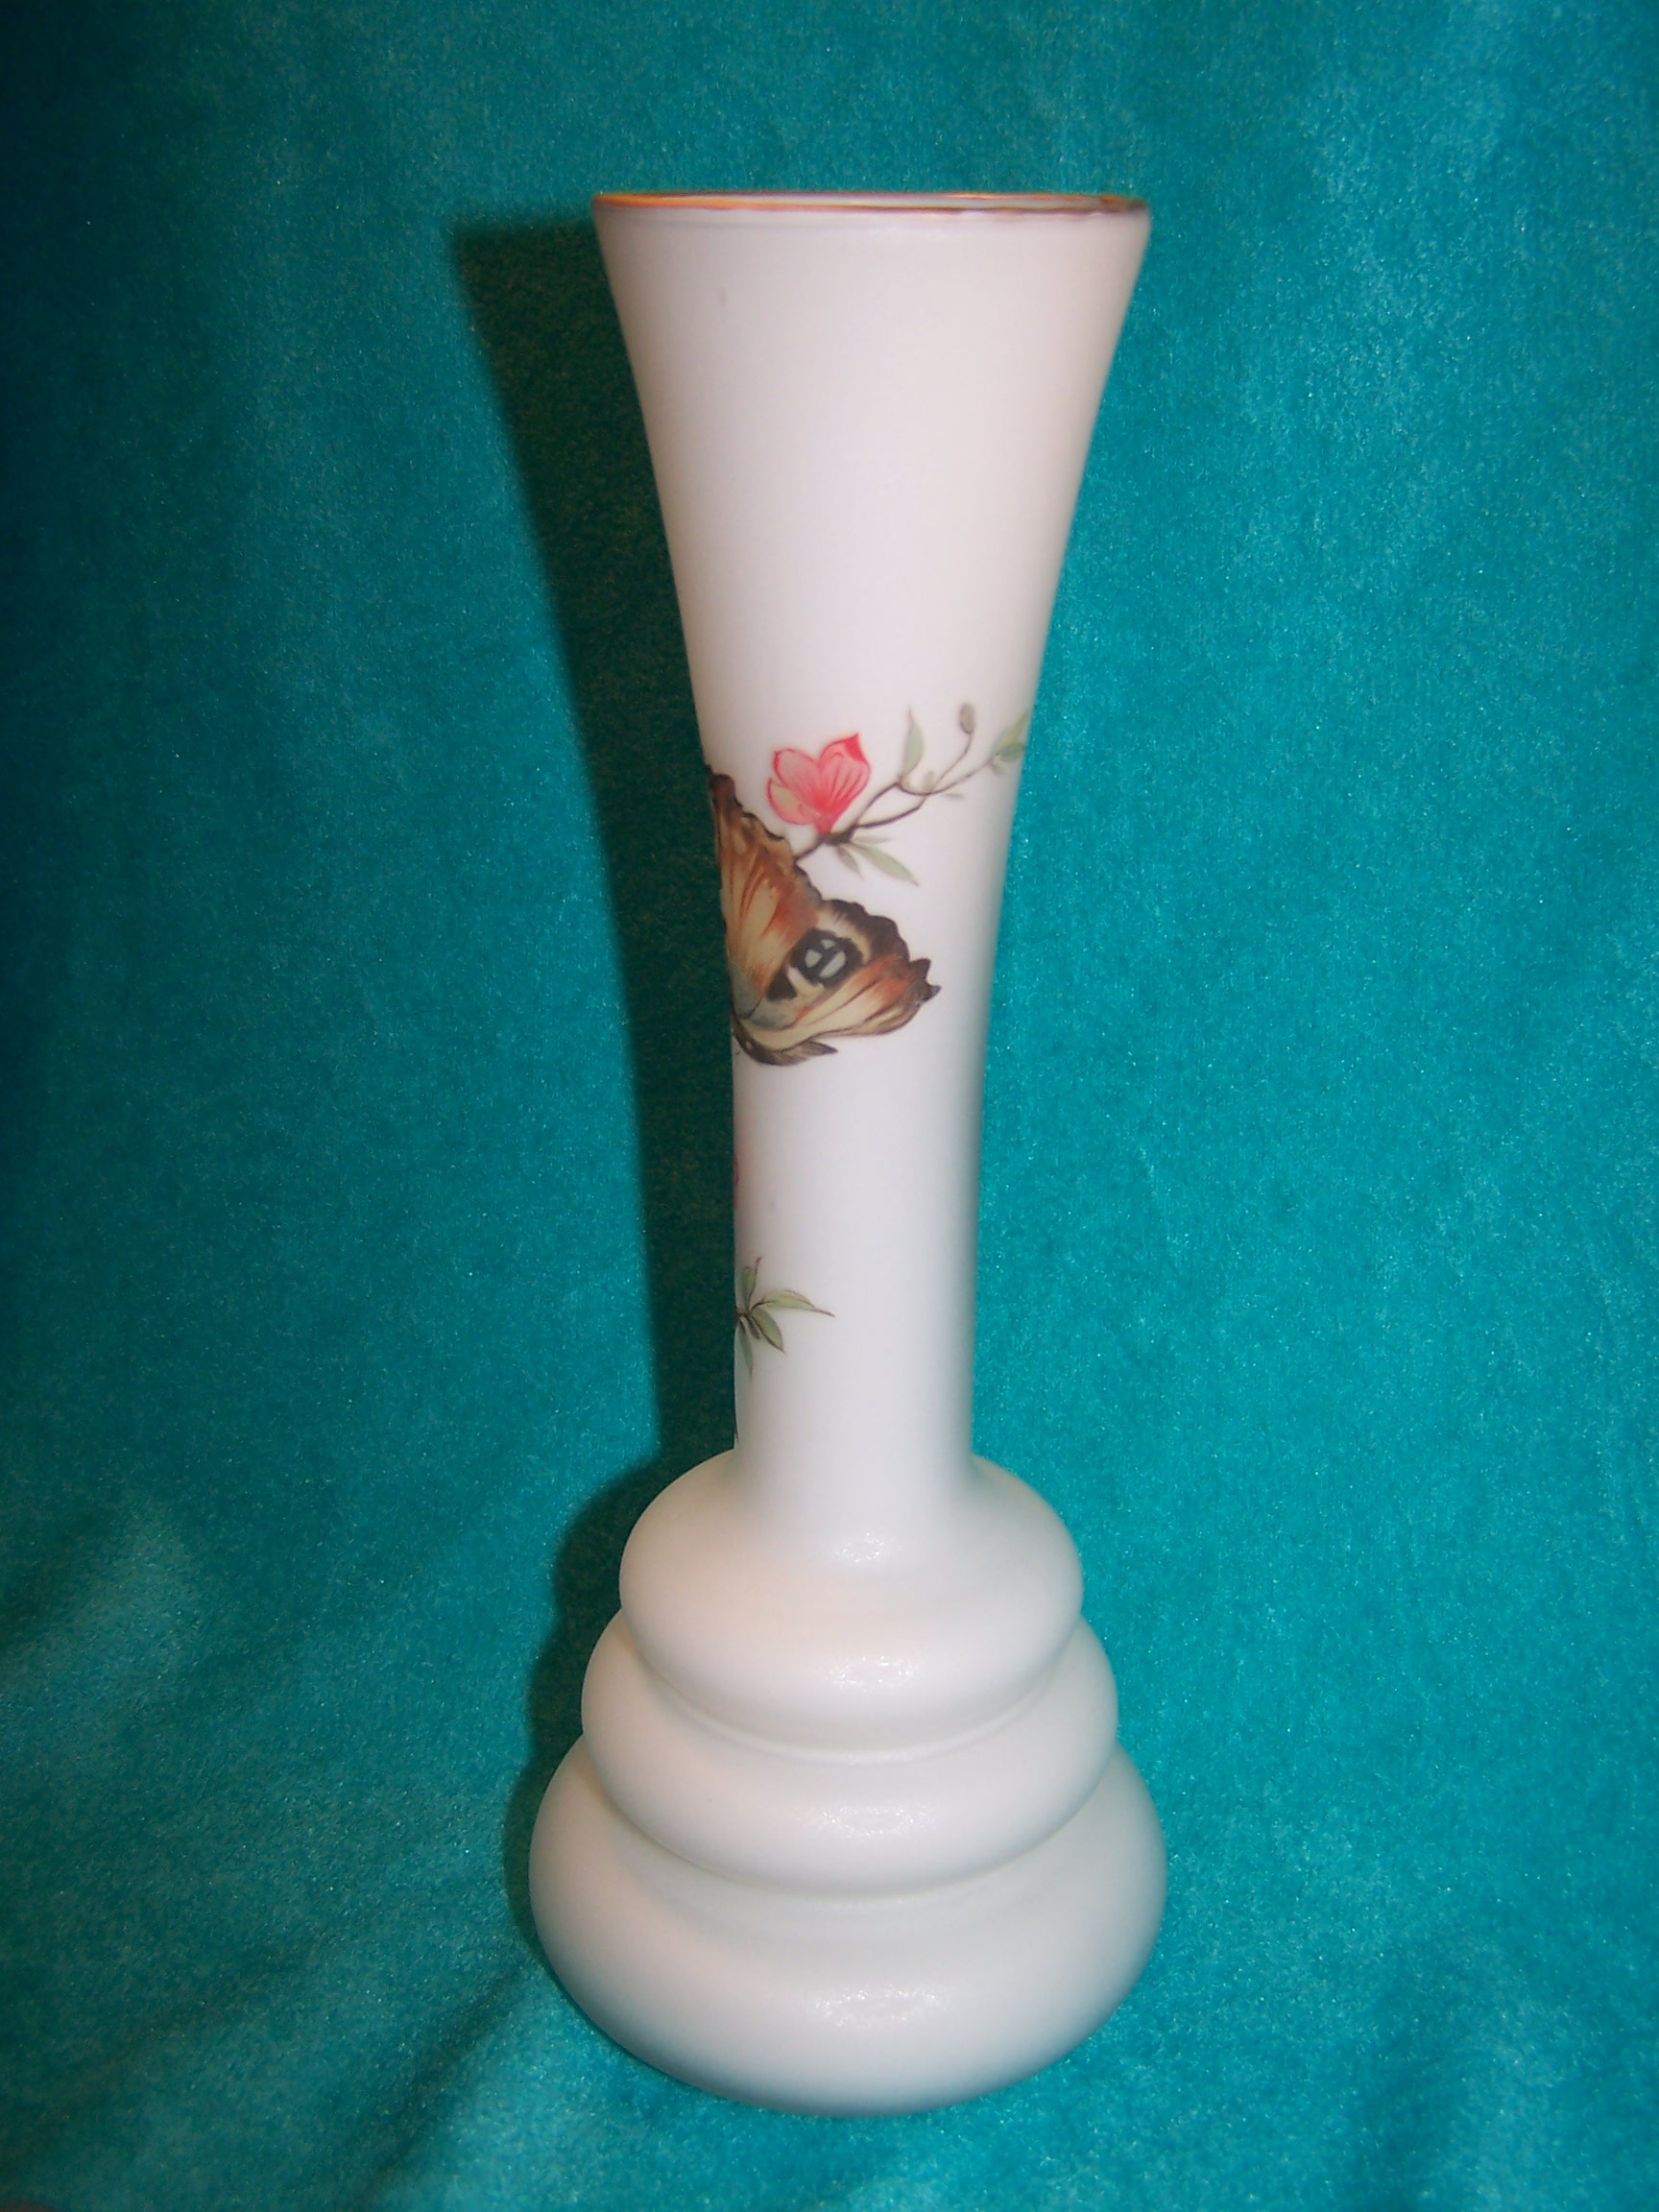 Image 3 of Milk Glass Butterfly Vase, Italian Satin Glass